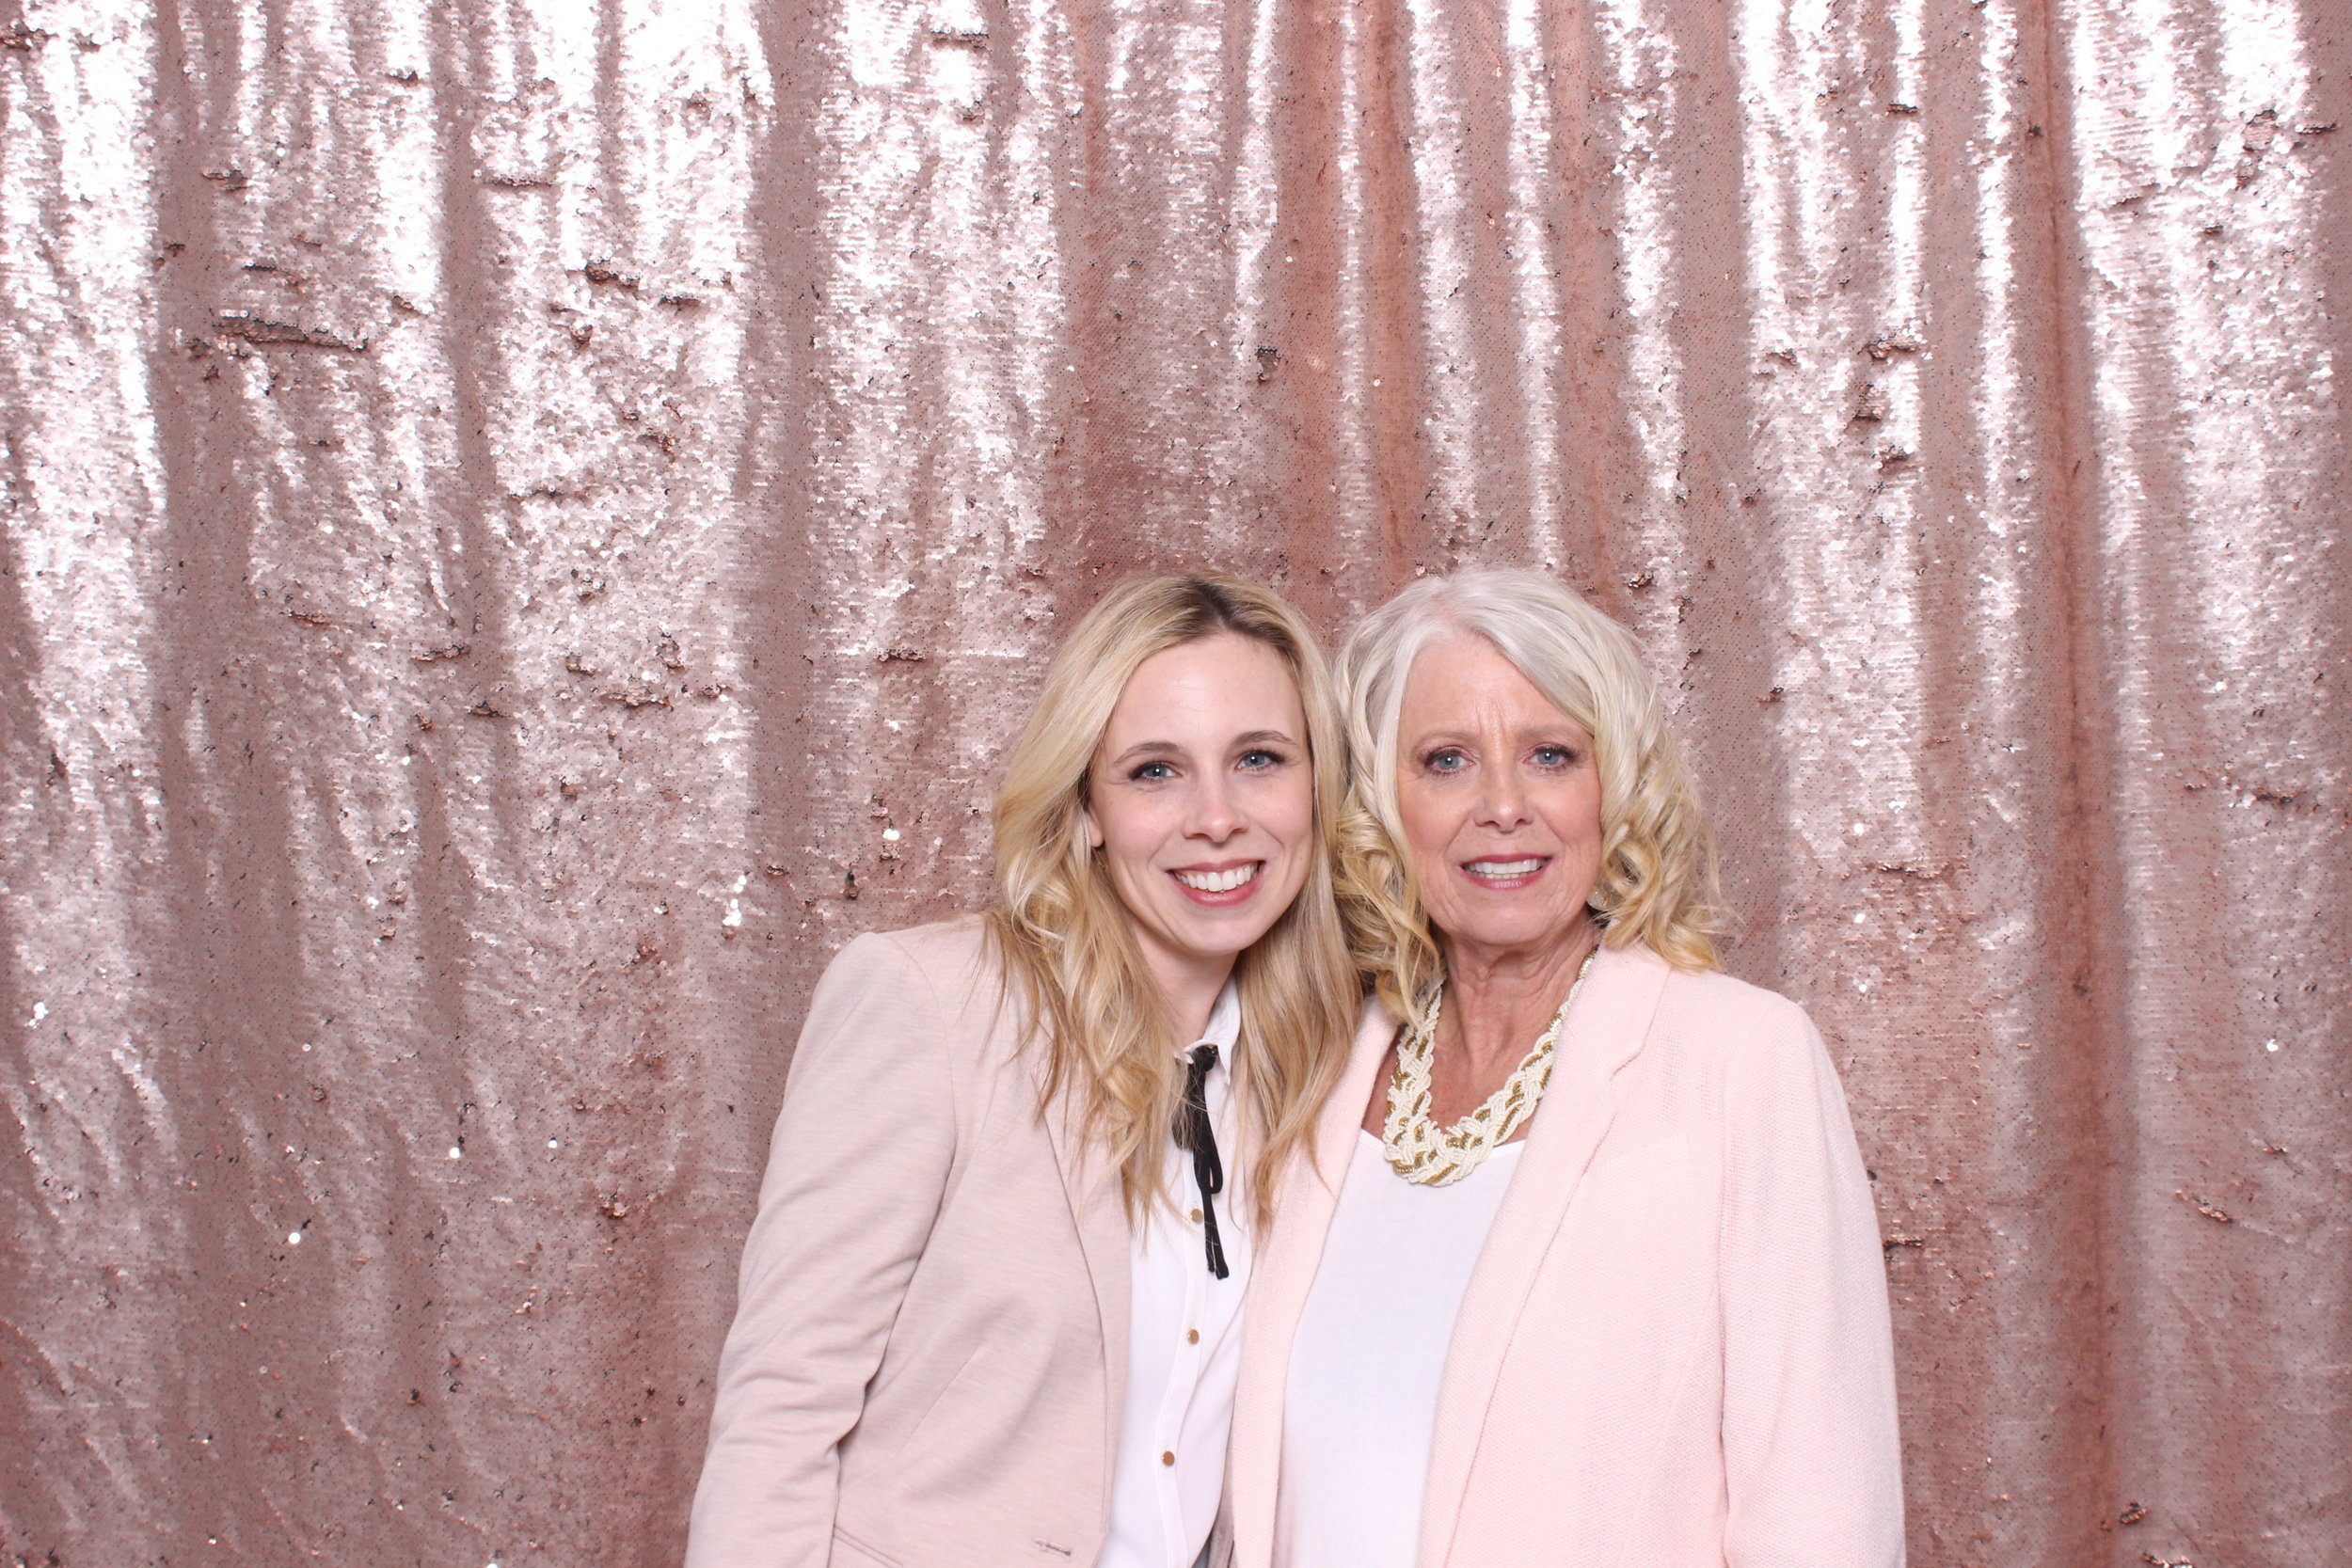 Hutton_House_Photo_Booth_rentals (2).jpg